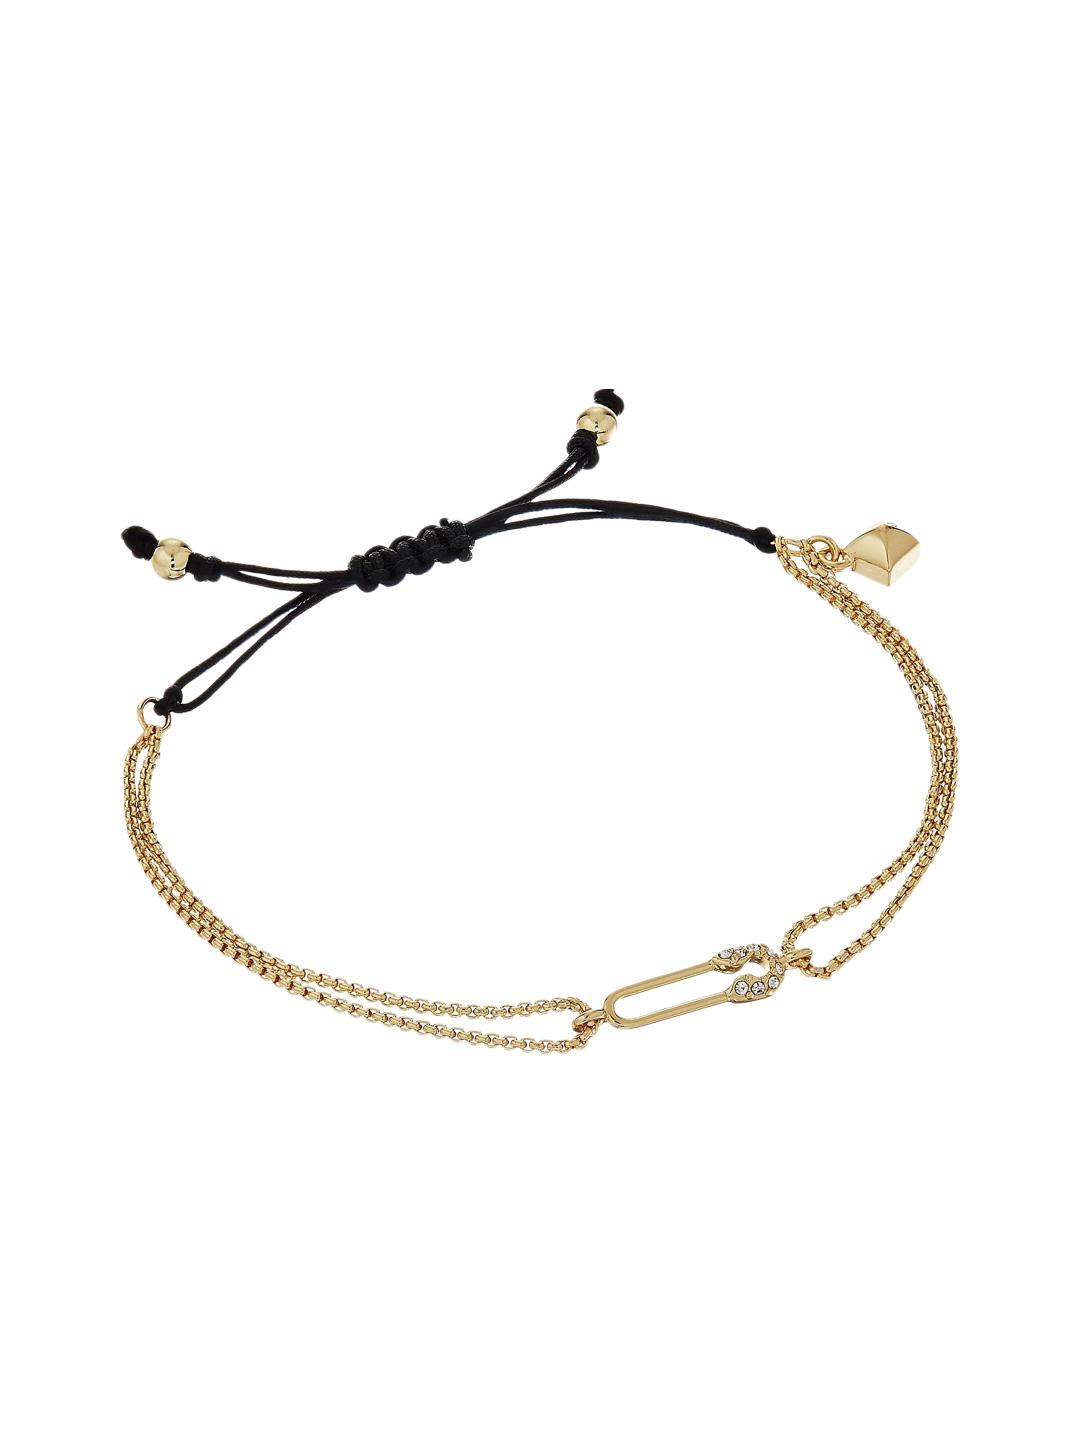 Rebecca Minkoff Stone Pulley Bracelet in Metallic Gold PHxH2t